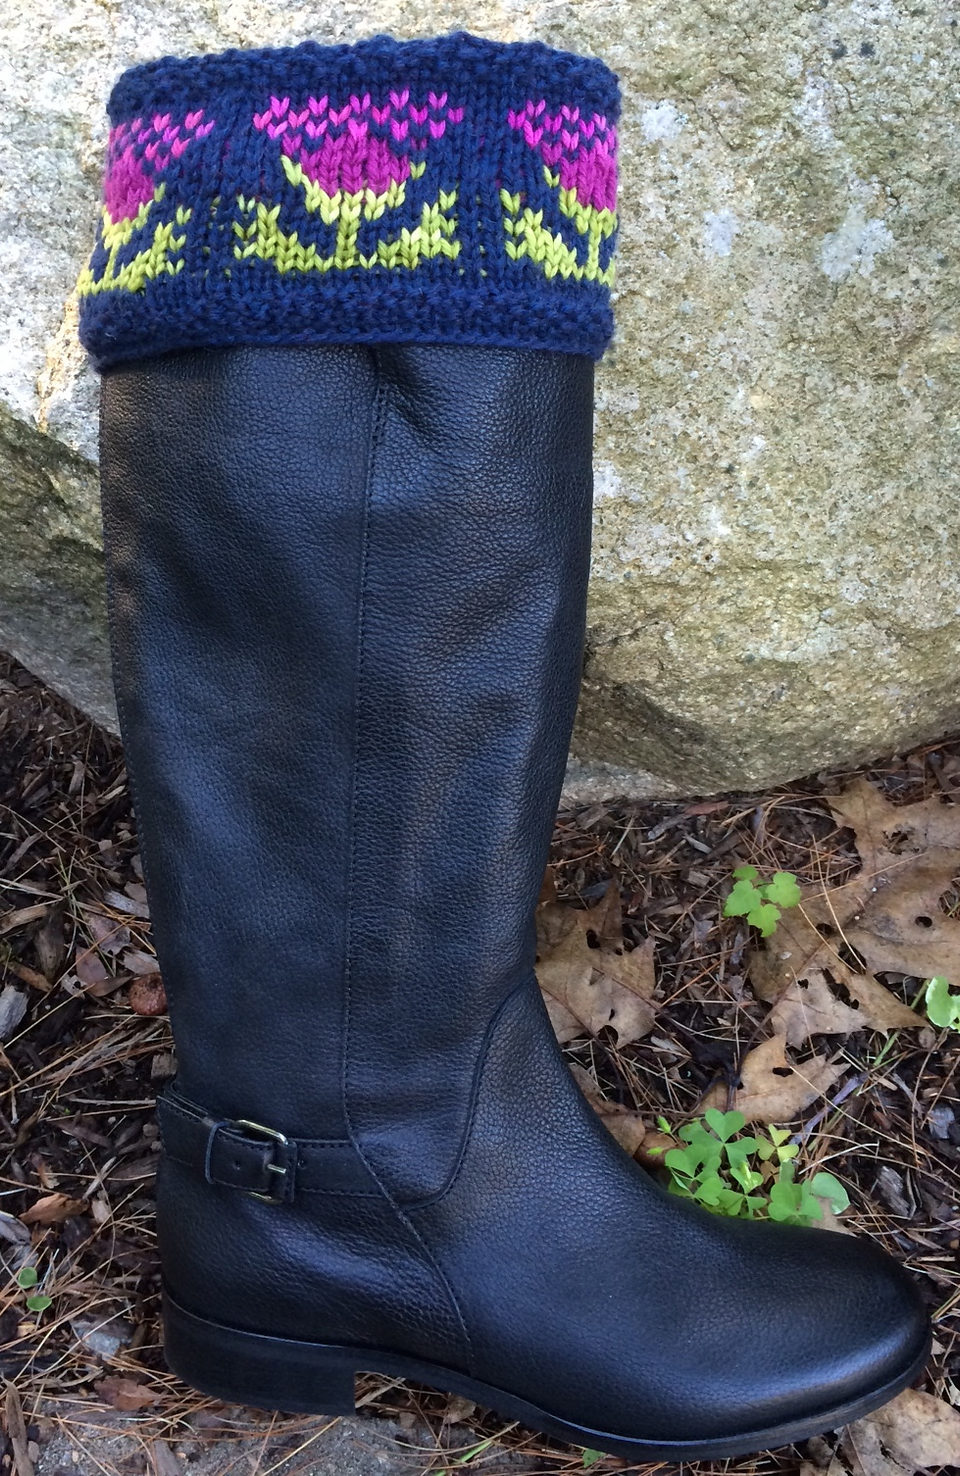 Free Knitting Pattern for Muir Glenn Thistle Boot Toppers